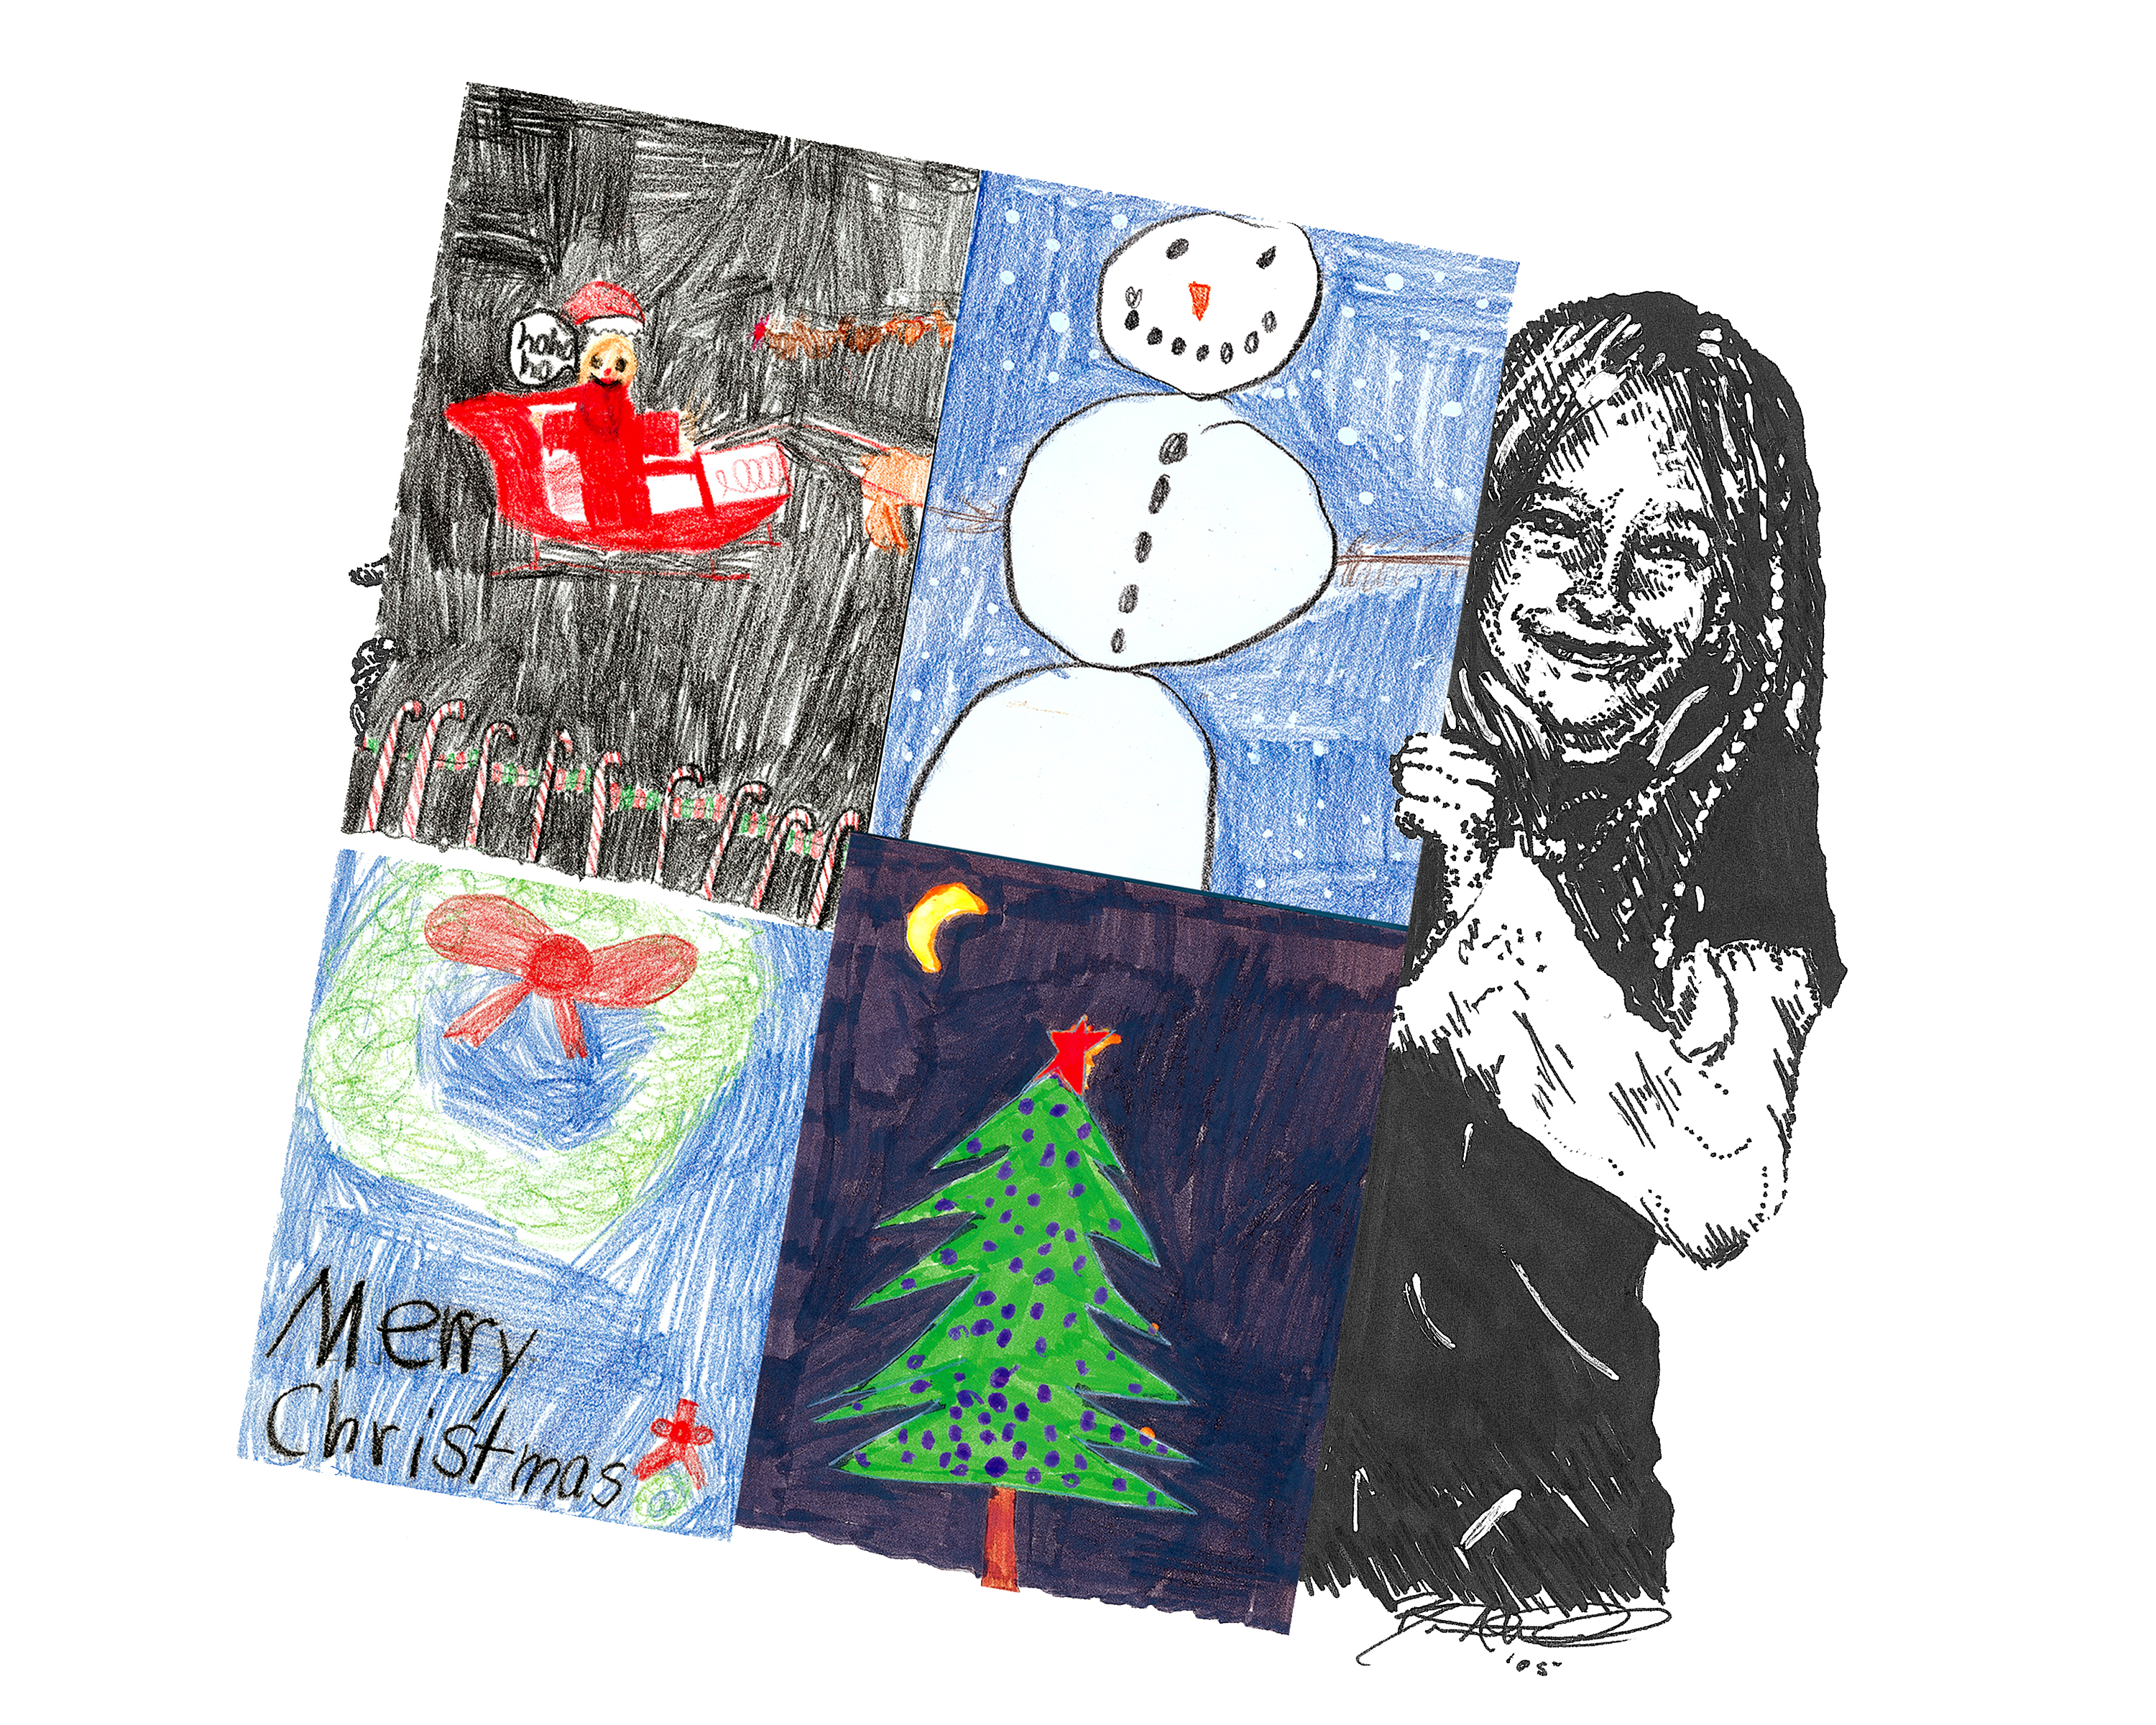 Kiddo's Christmas